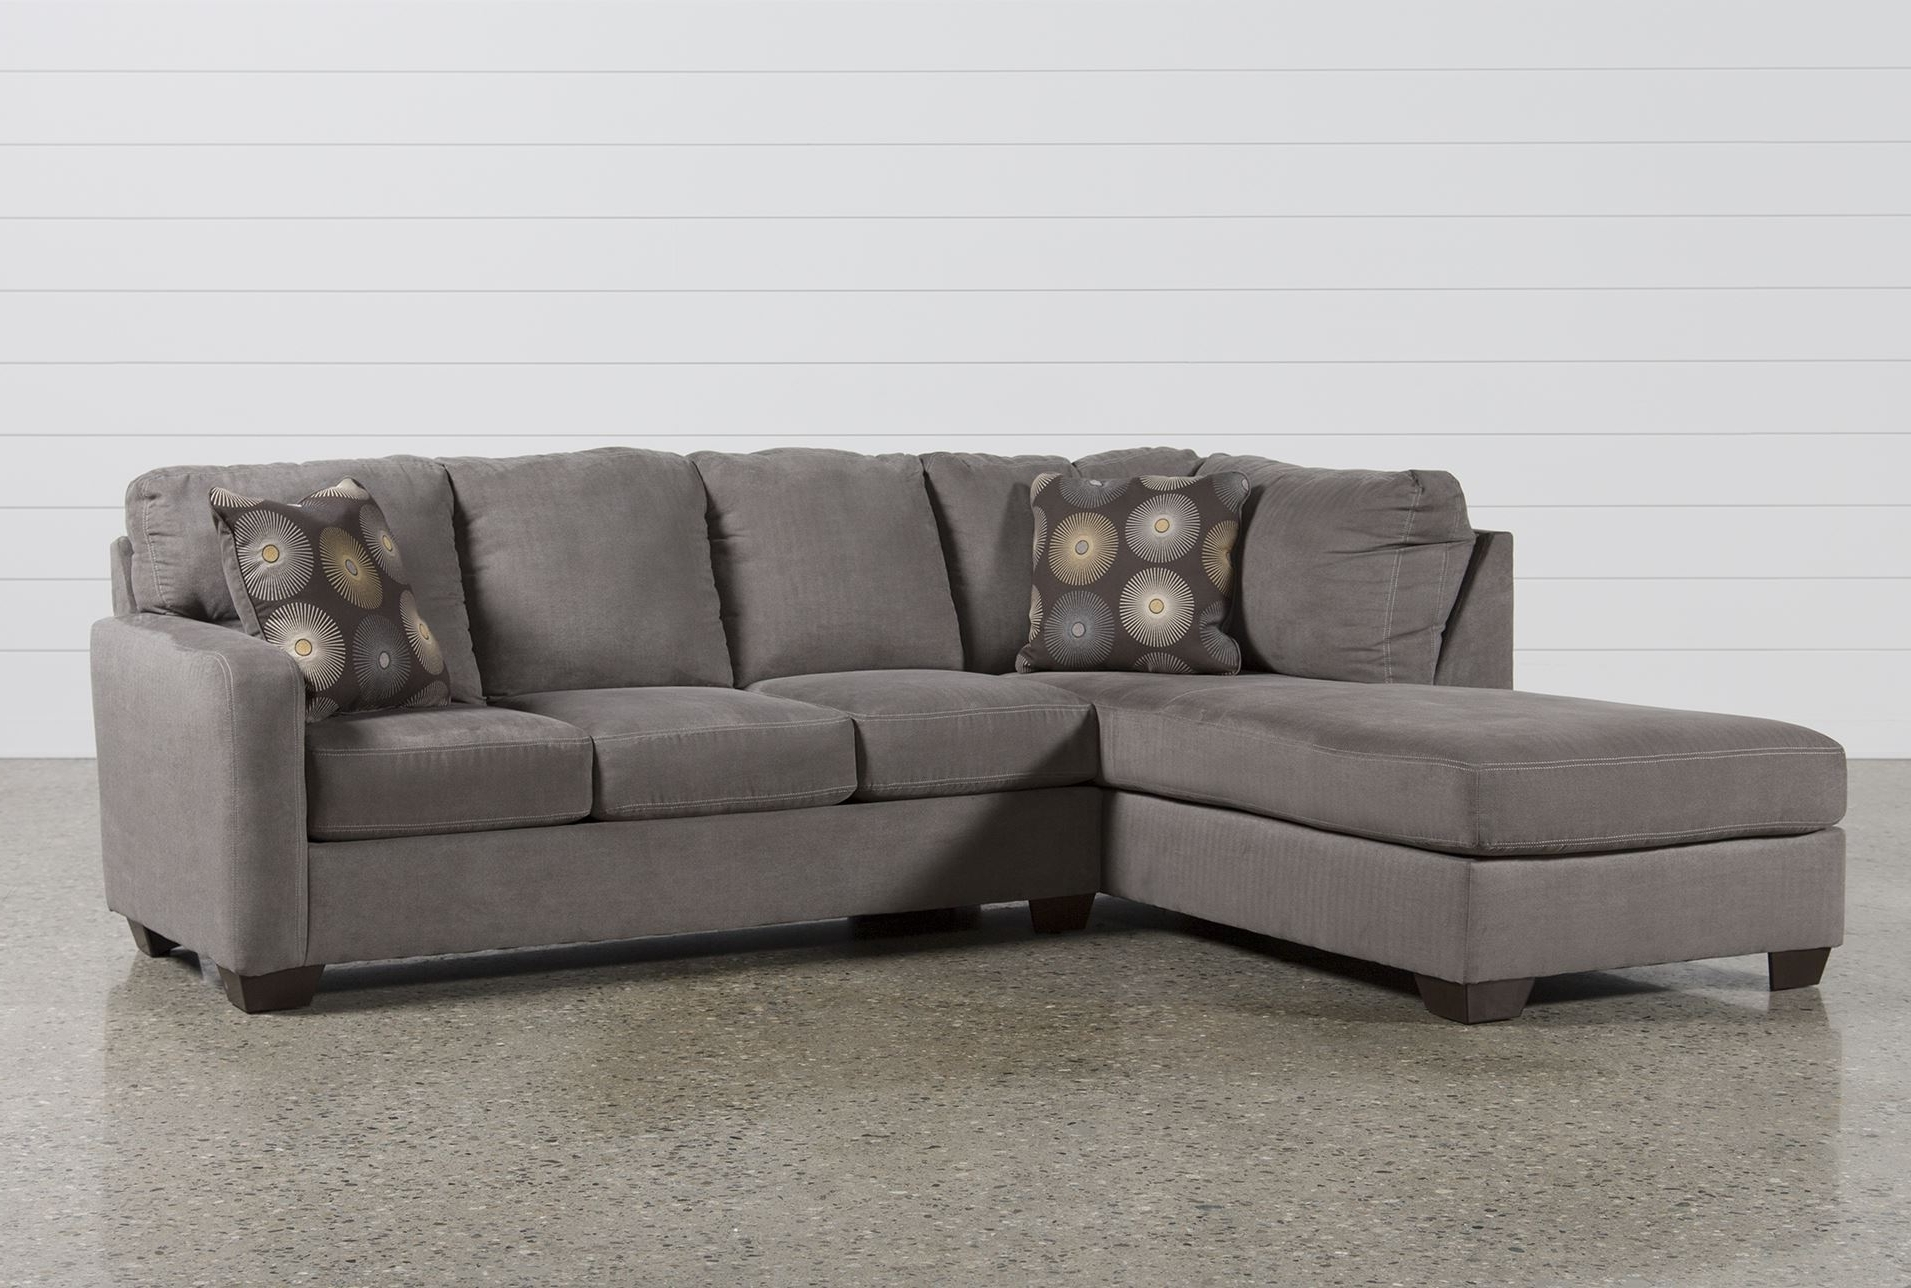 Newest Sofa ~ Luxury Leather Sofa With Chaise Lounge Cute Small Sectional Within 2 Piece Sectionals With Chaise Lounge (View 9 of 15)